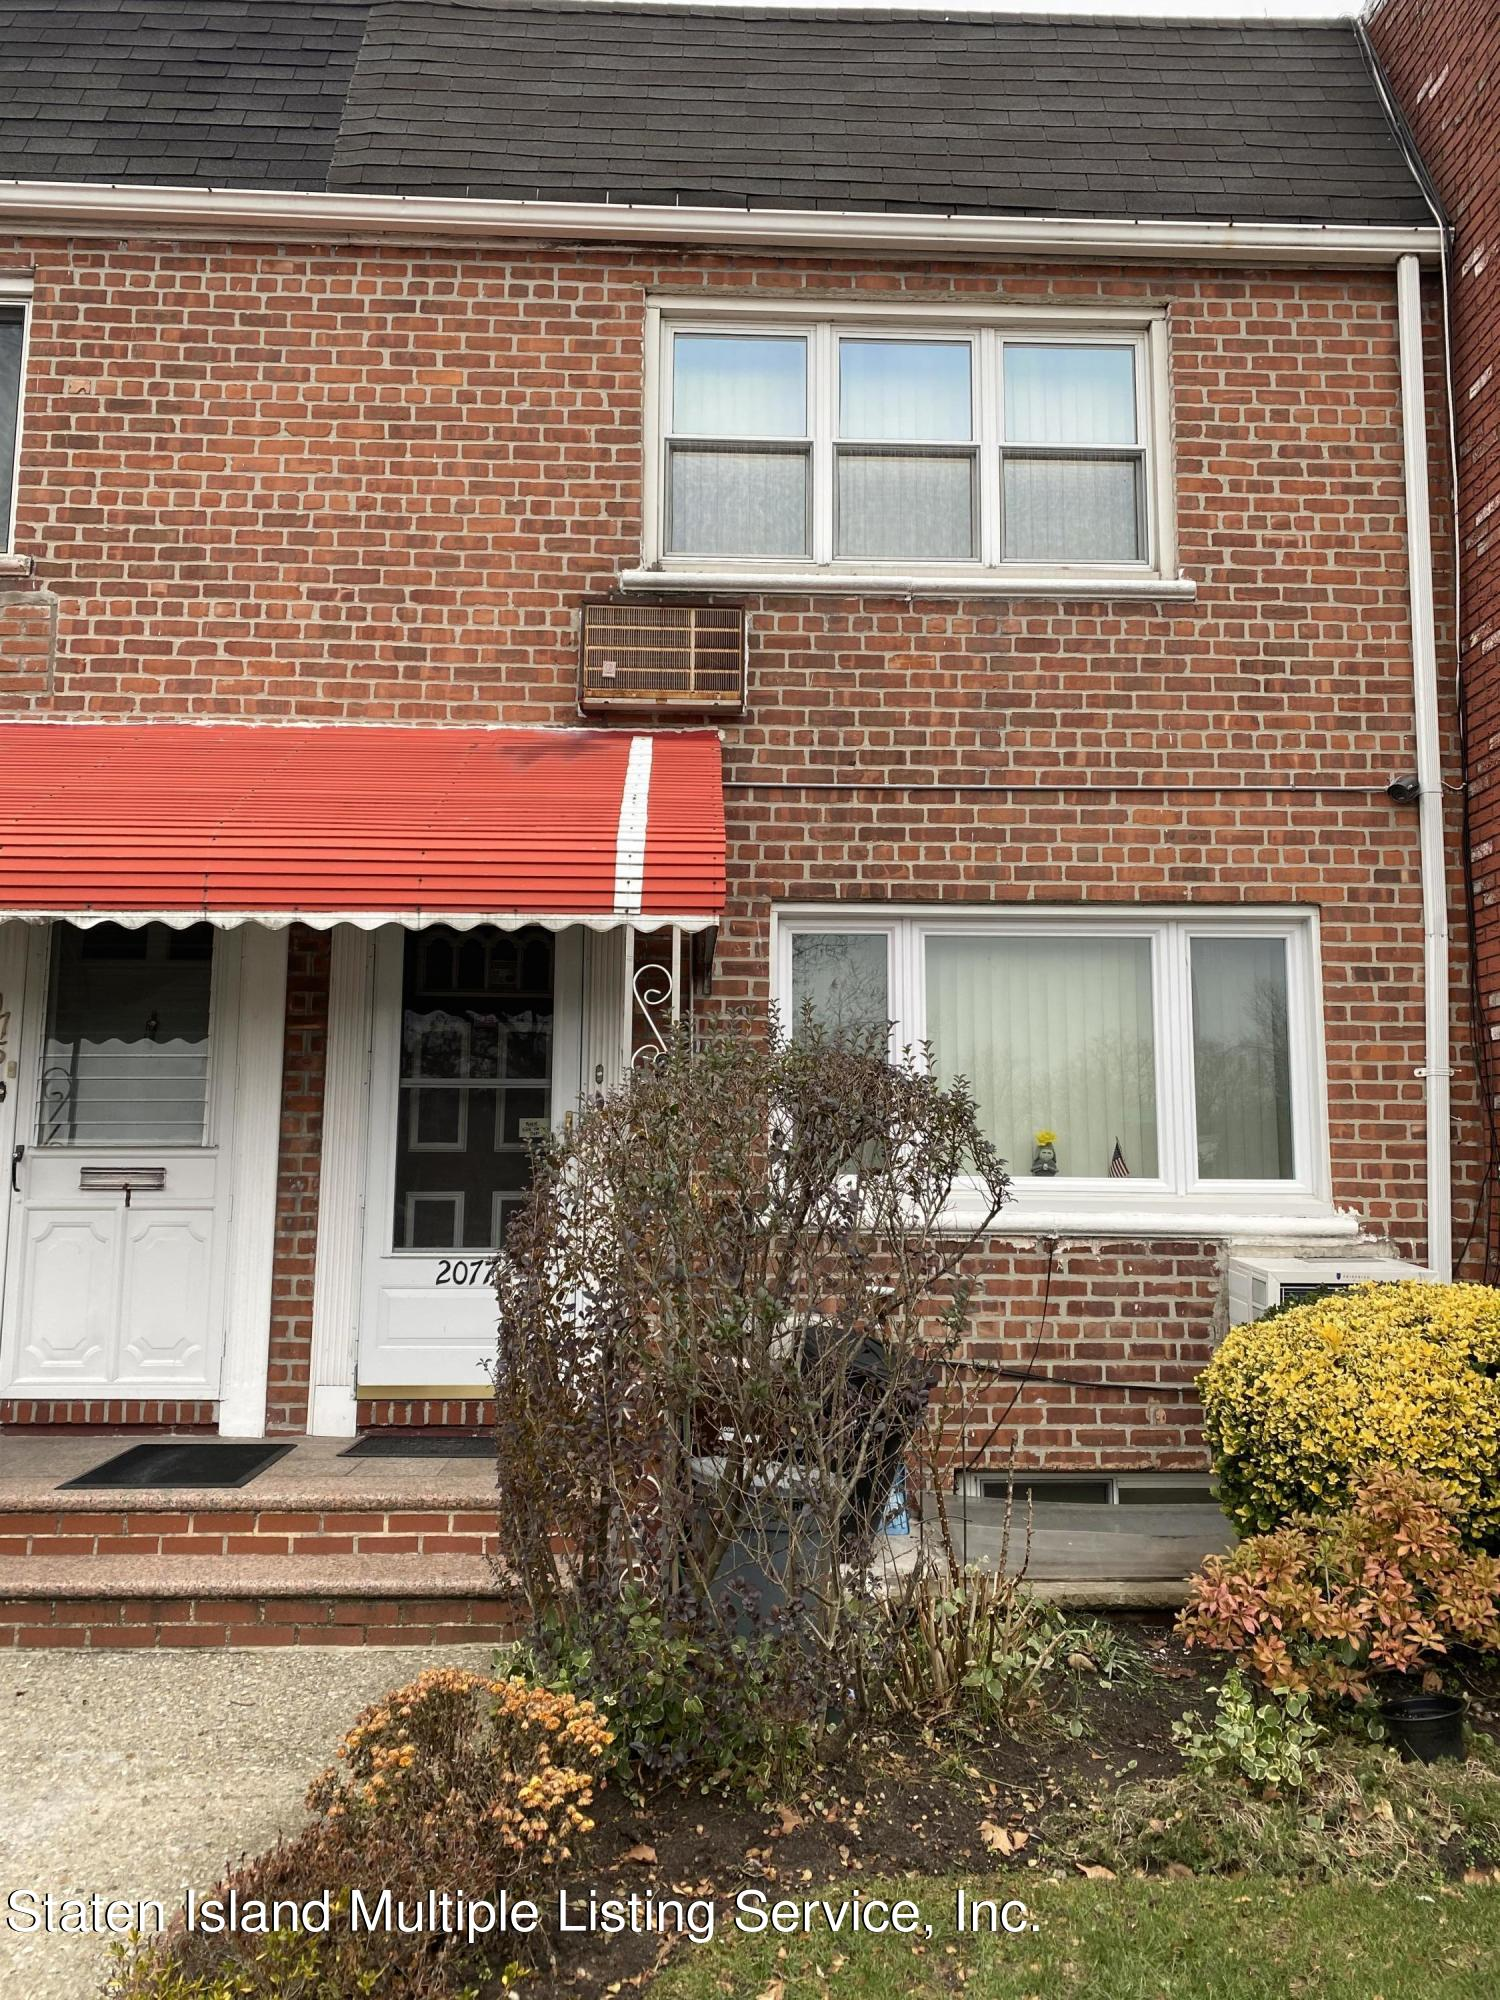 Single Family - Attached in Gravesend - 2077 Shore Parkway  Brooklyn, NY 11214